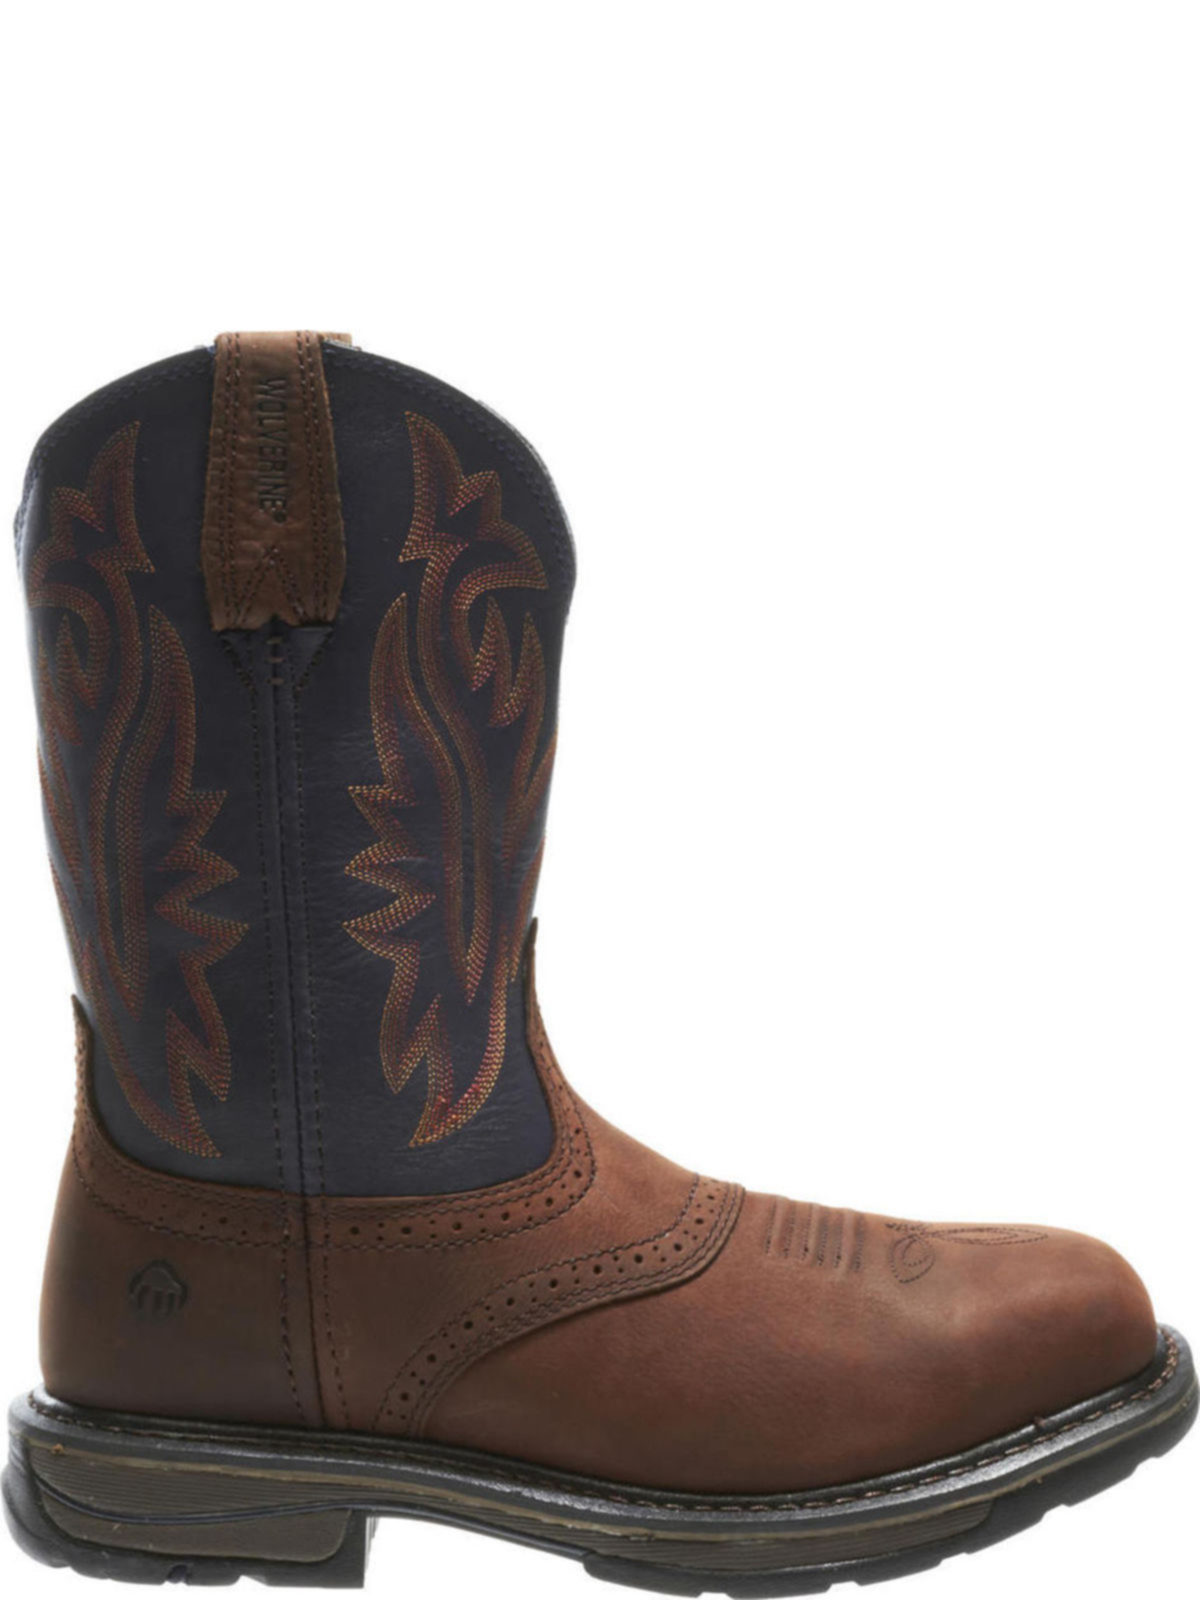 ed2c3412668 Wolverine Mens Javelina High Plains Western Wellington Work Boots W10244